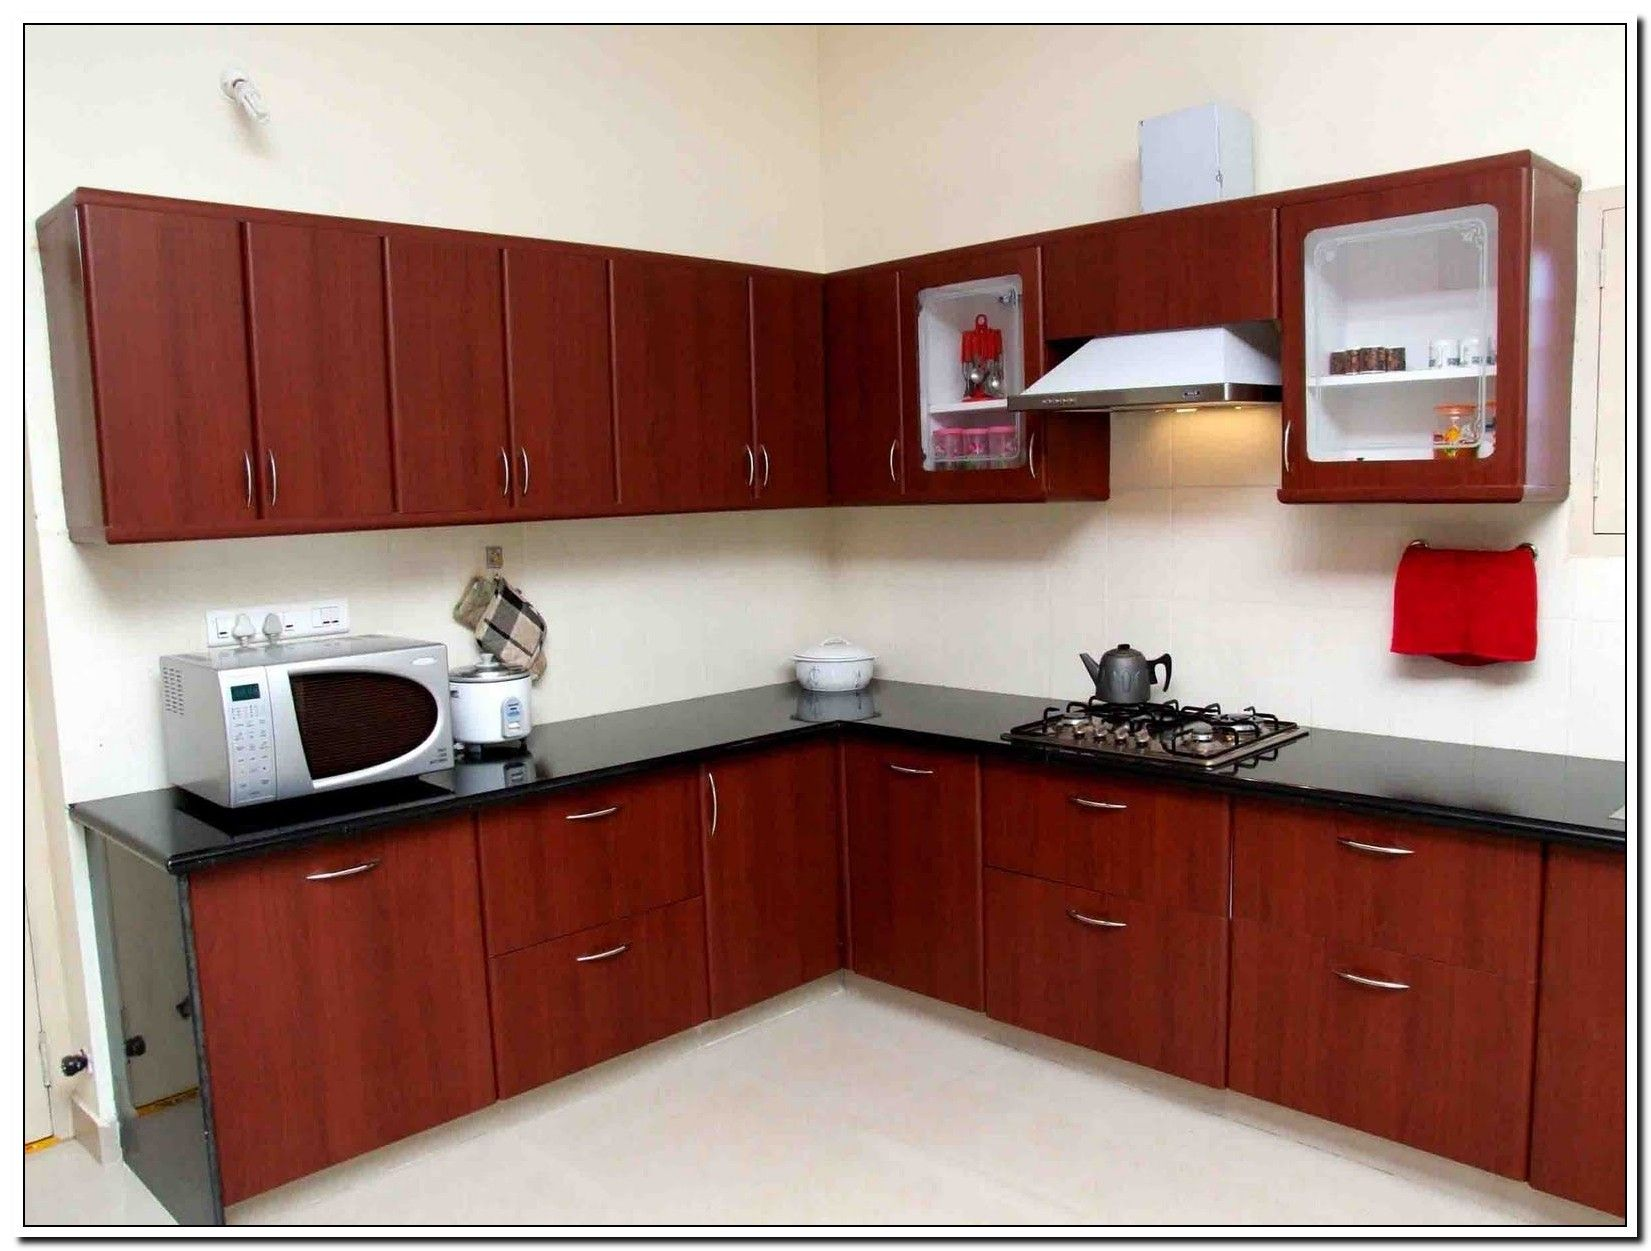 38 Reference Of Open Kitchen Style In Pakistan Kitchen Cupboard Designs Simple Kitchen Cabinets Simple Kitchen Design